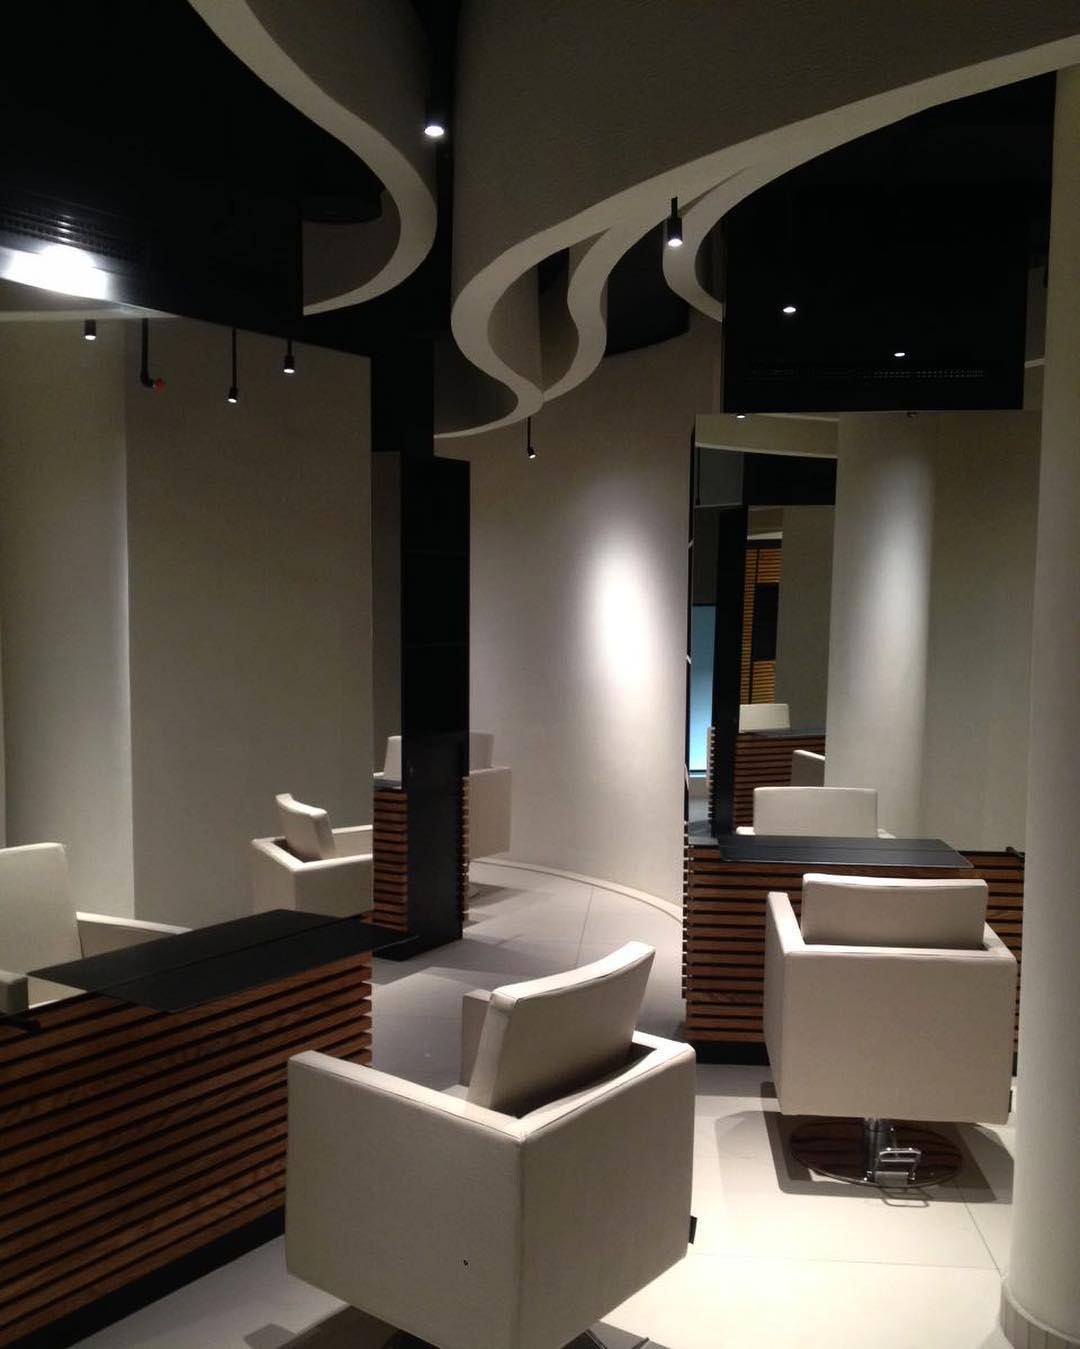 Another peak of our last project #oriana_salonandspa #jeddah #beautysalon #retailproject #superfuturedesign